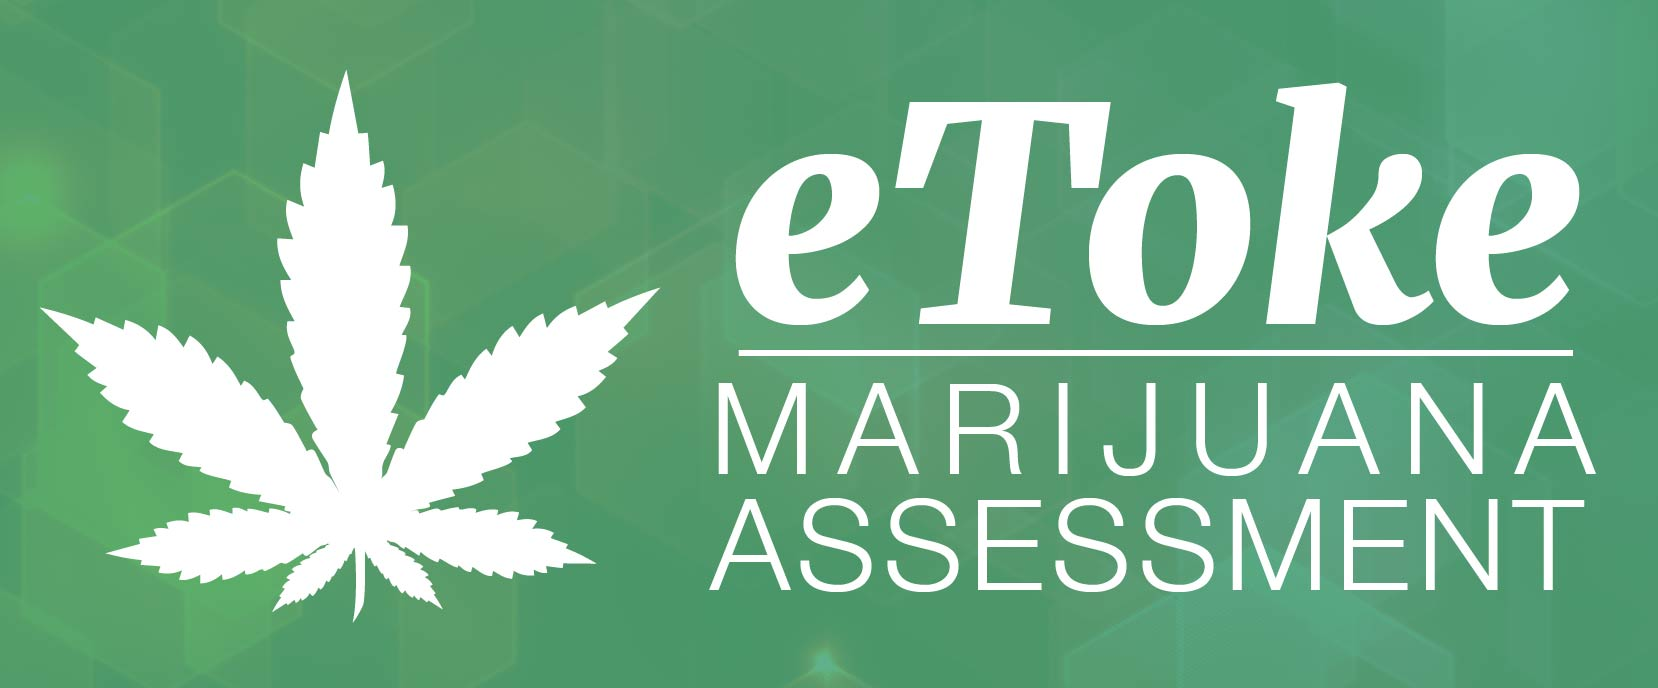 Take the e-Toke Marijuana assessment, opens in a new tab